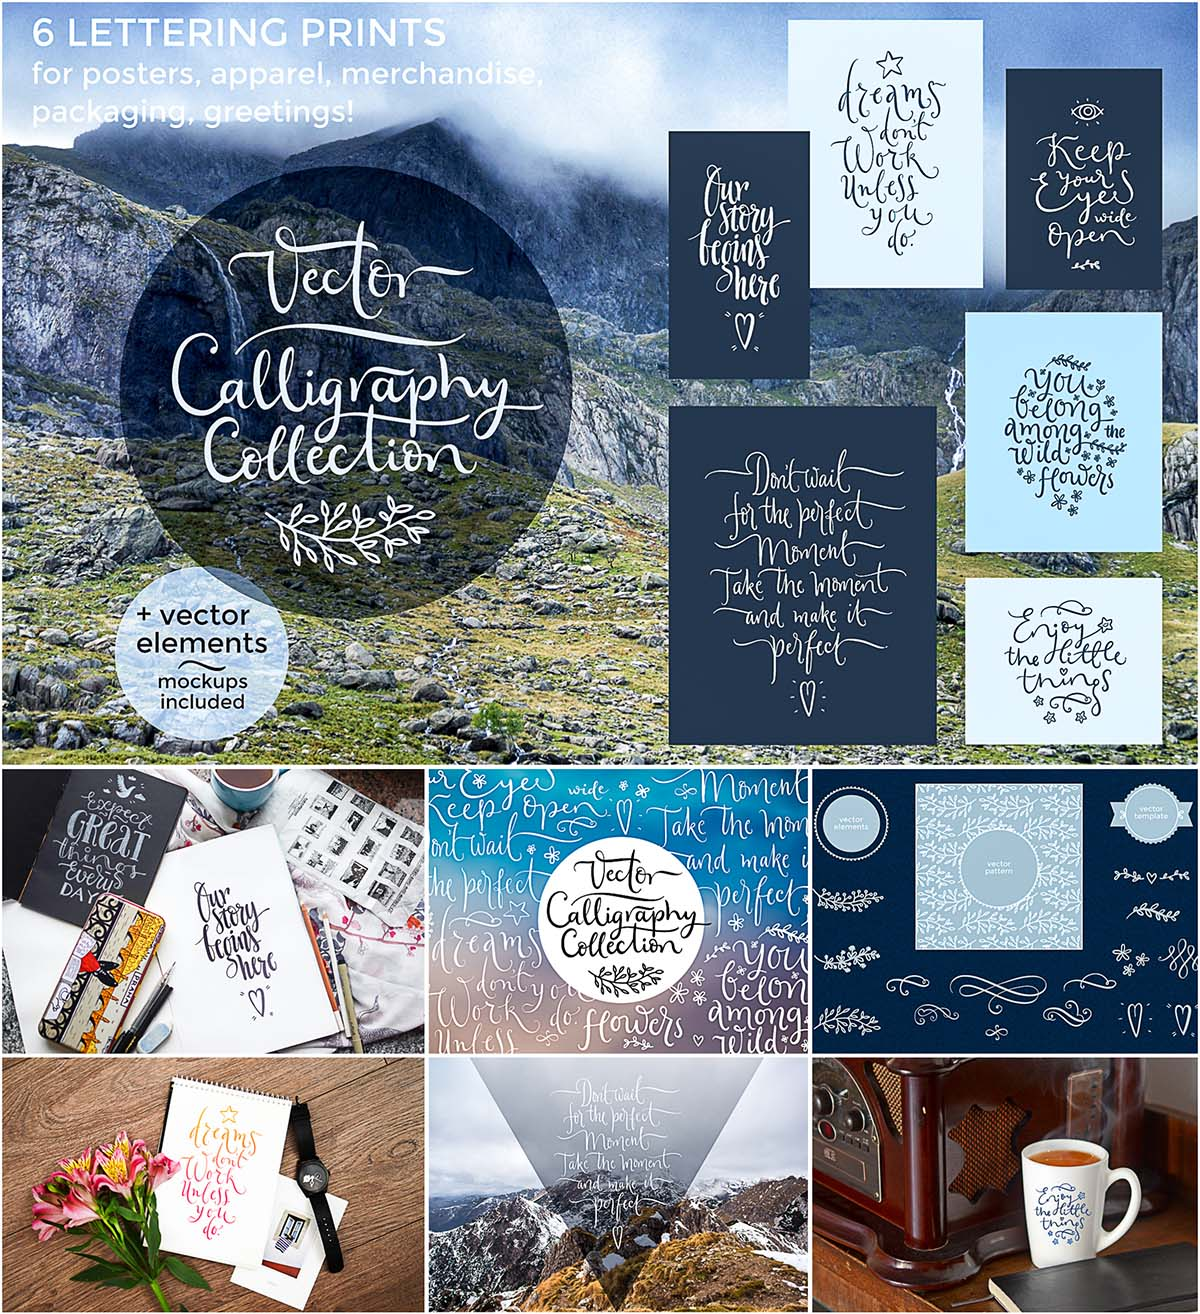 Calligraphy set with mockups and overlays